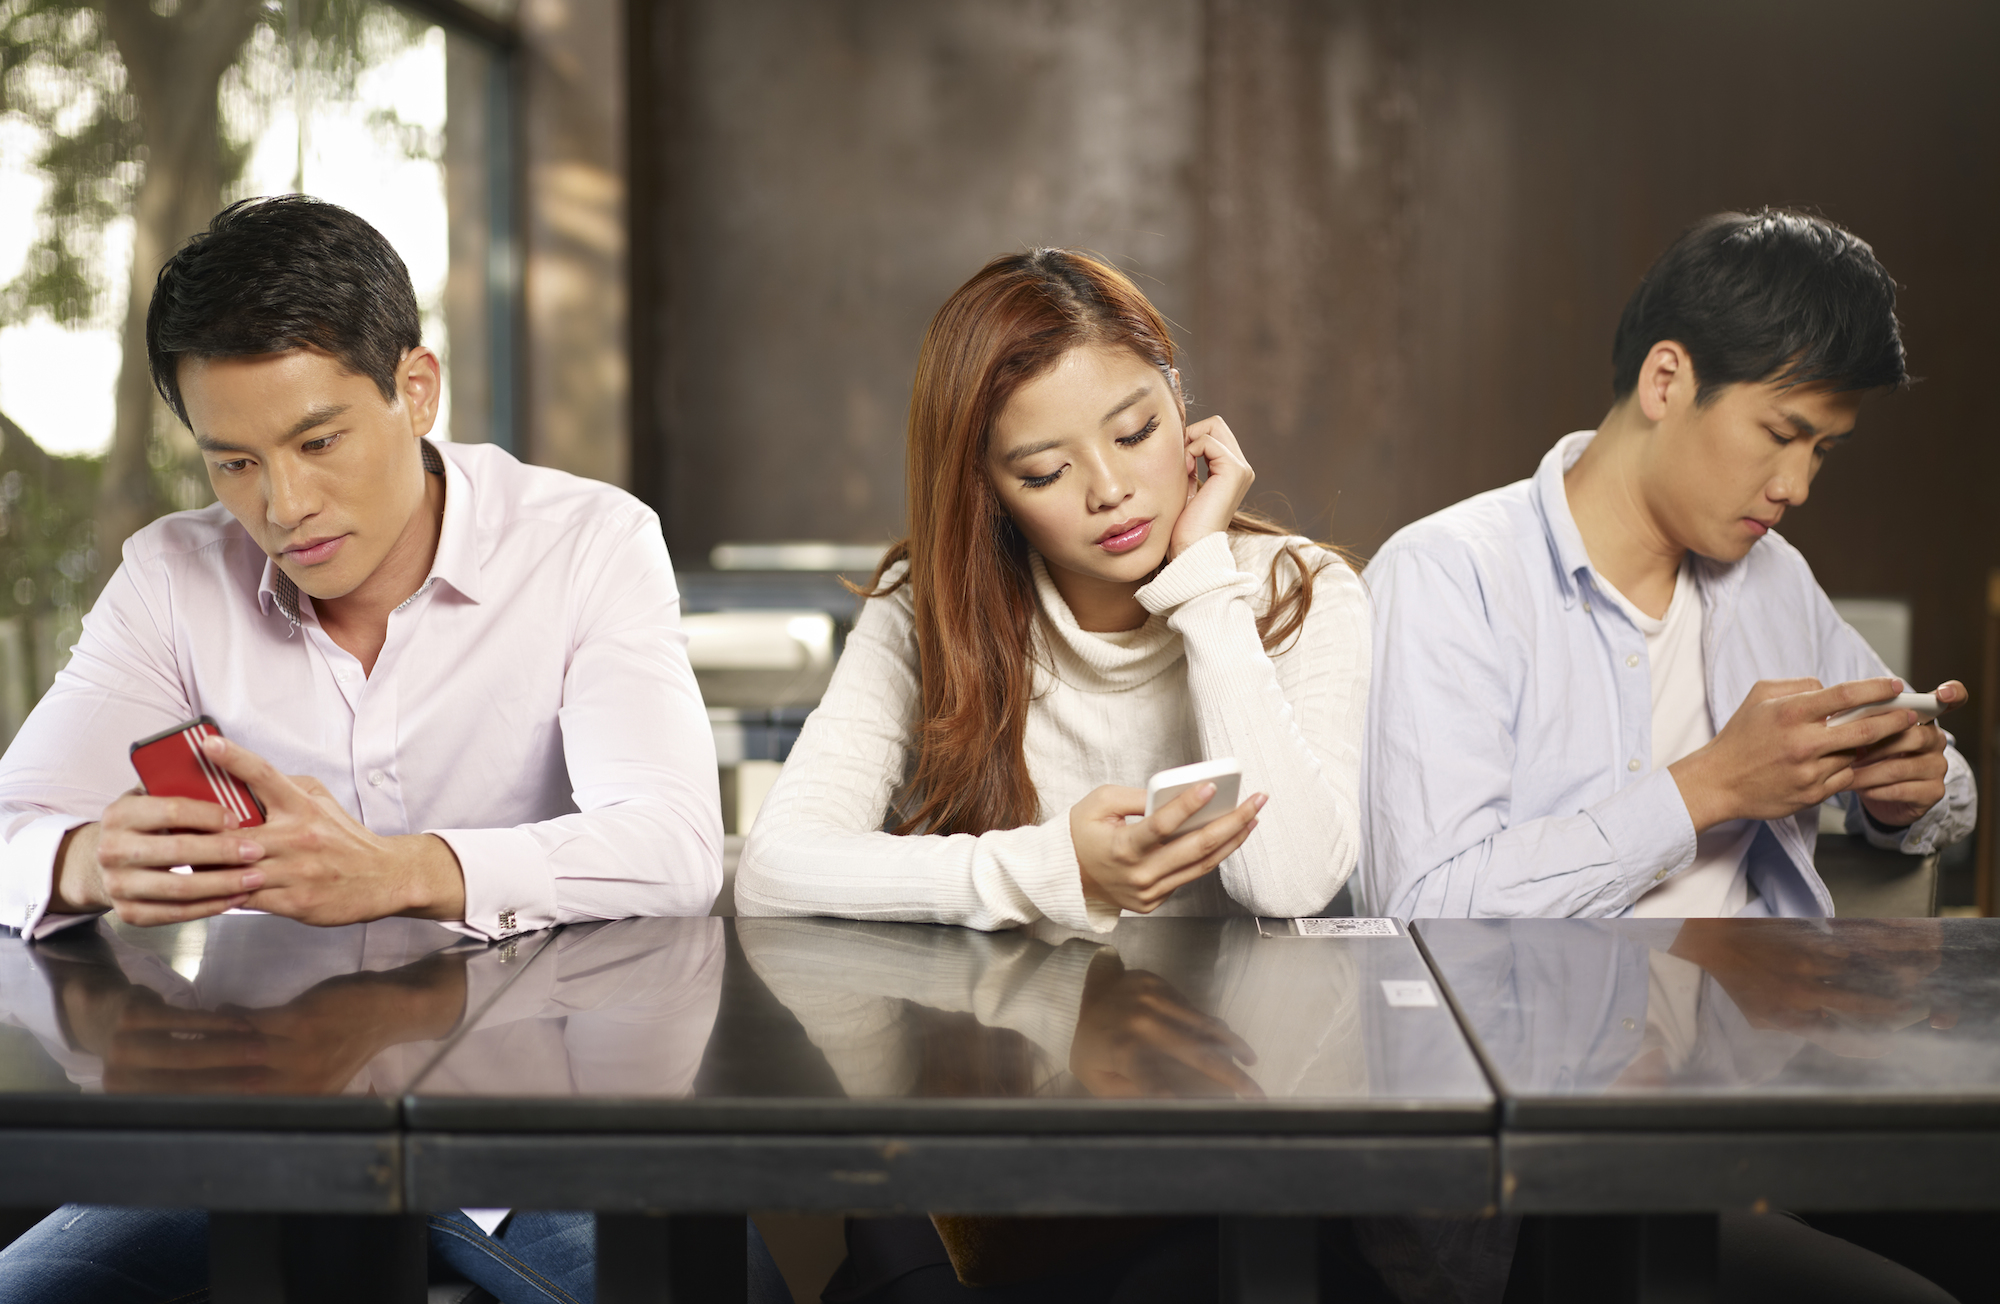 bad influence of mobile phones on society